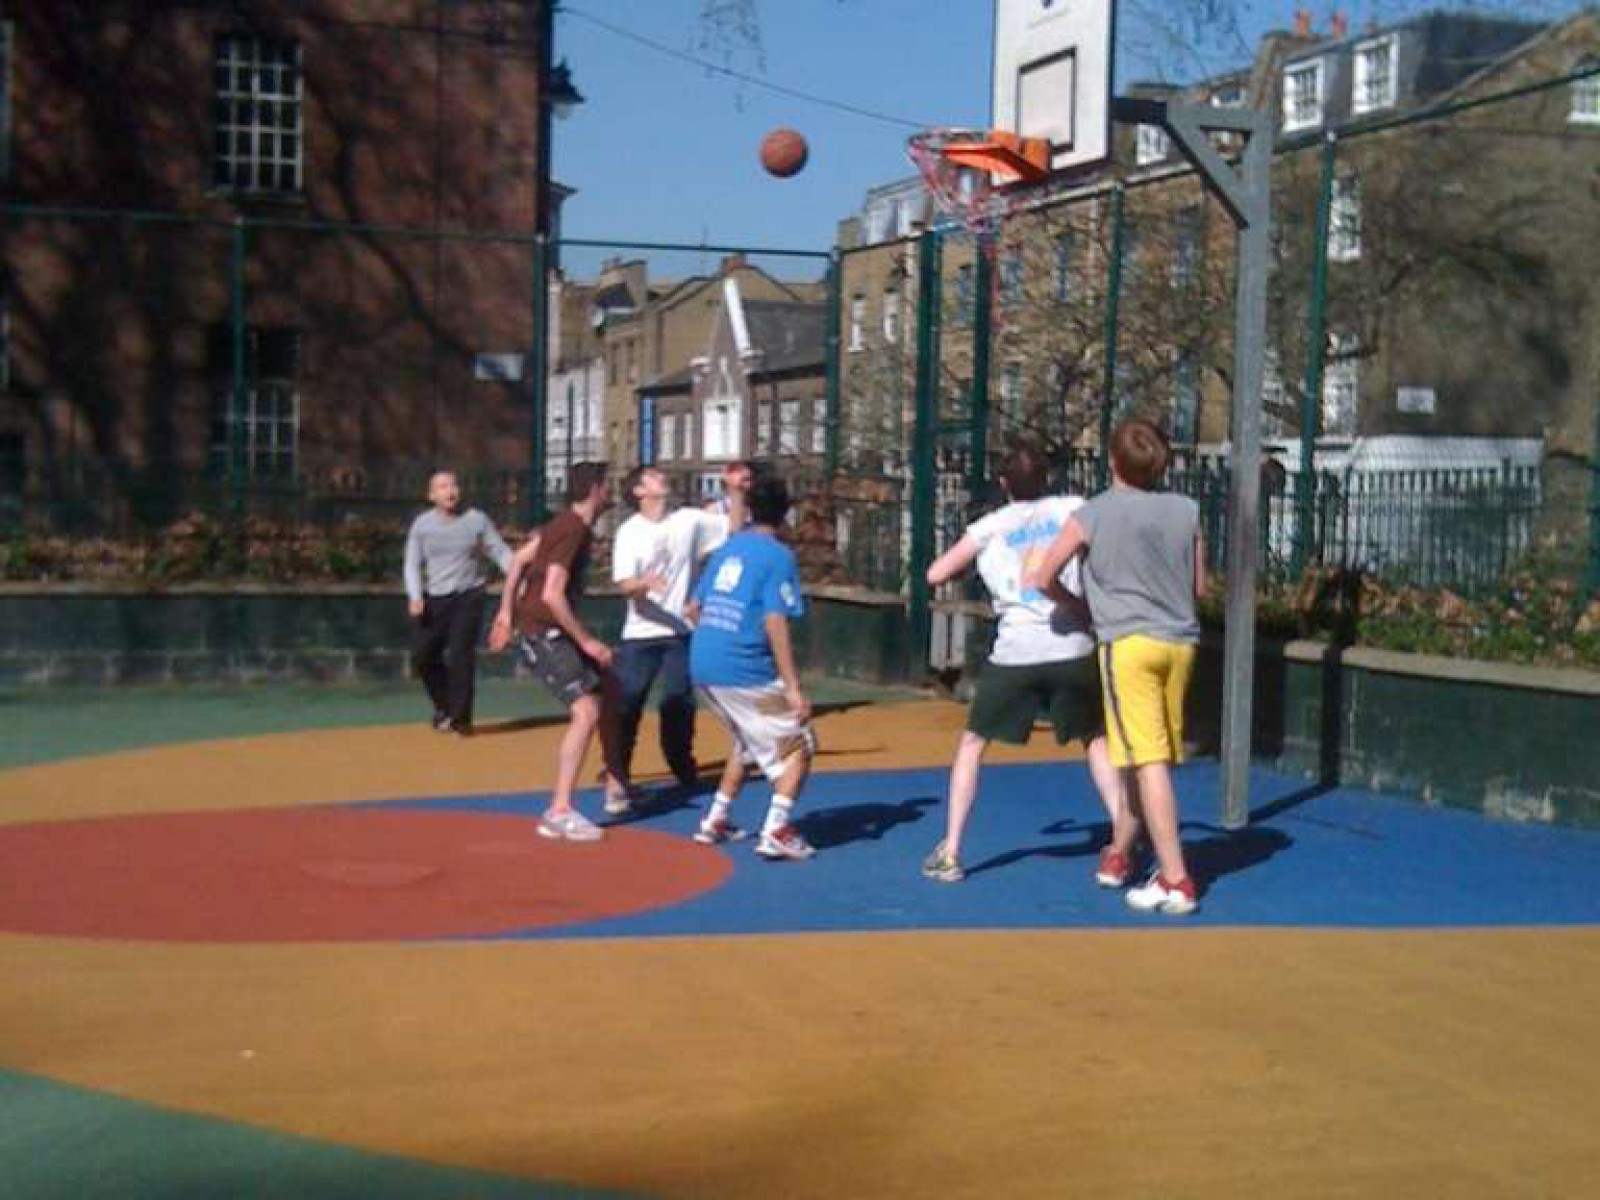 Argyle Square Public Basketball Court‎, London, United Kingdom